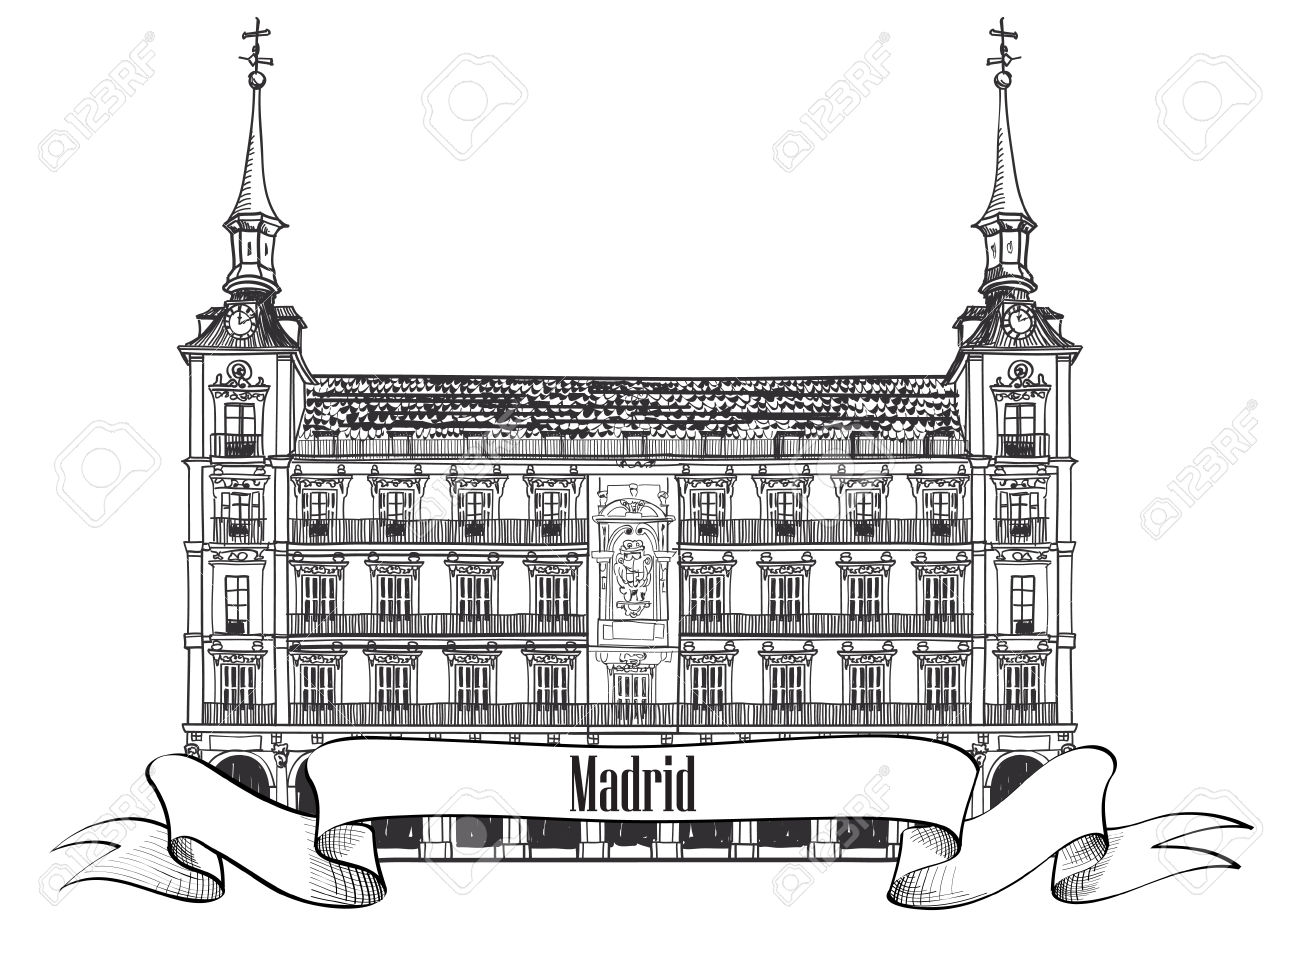 Plaza Mayor In Madrid, Spain Hand Drawing Vector Illustration.